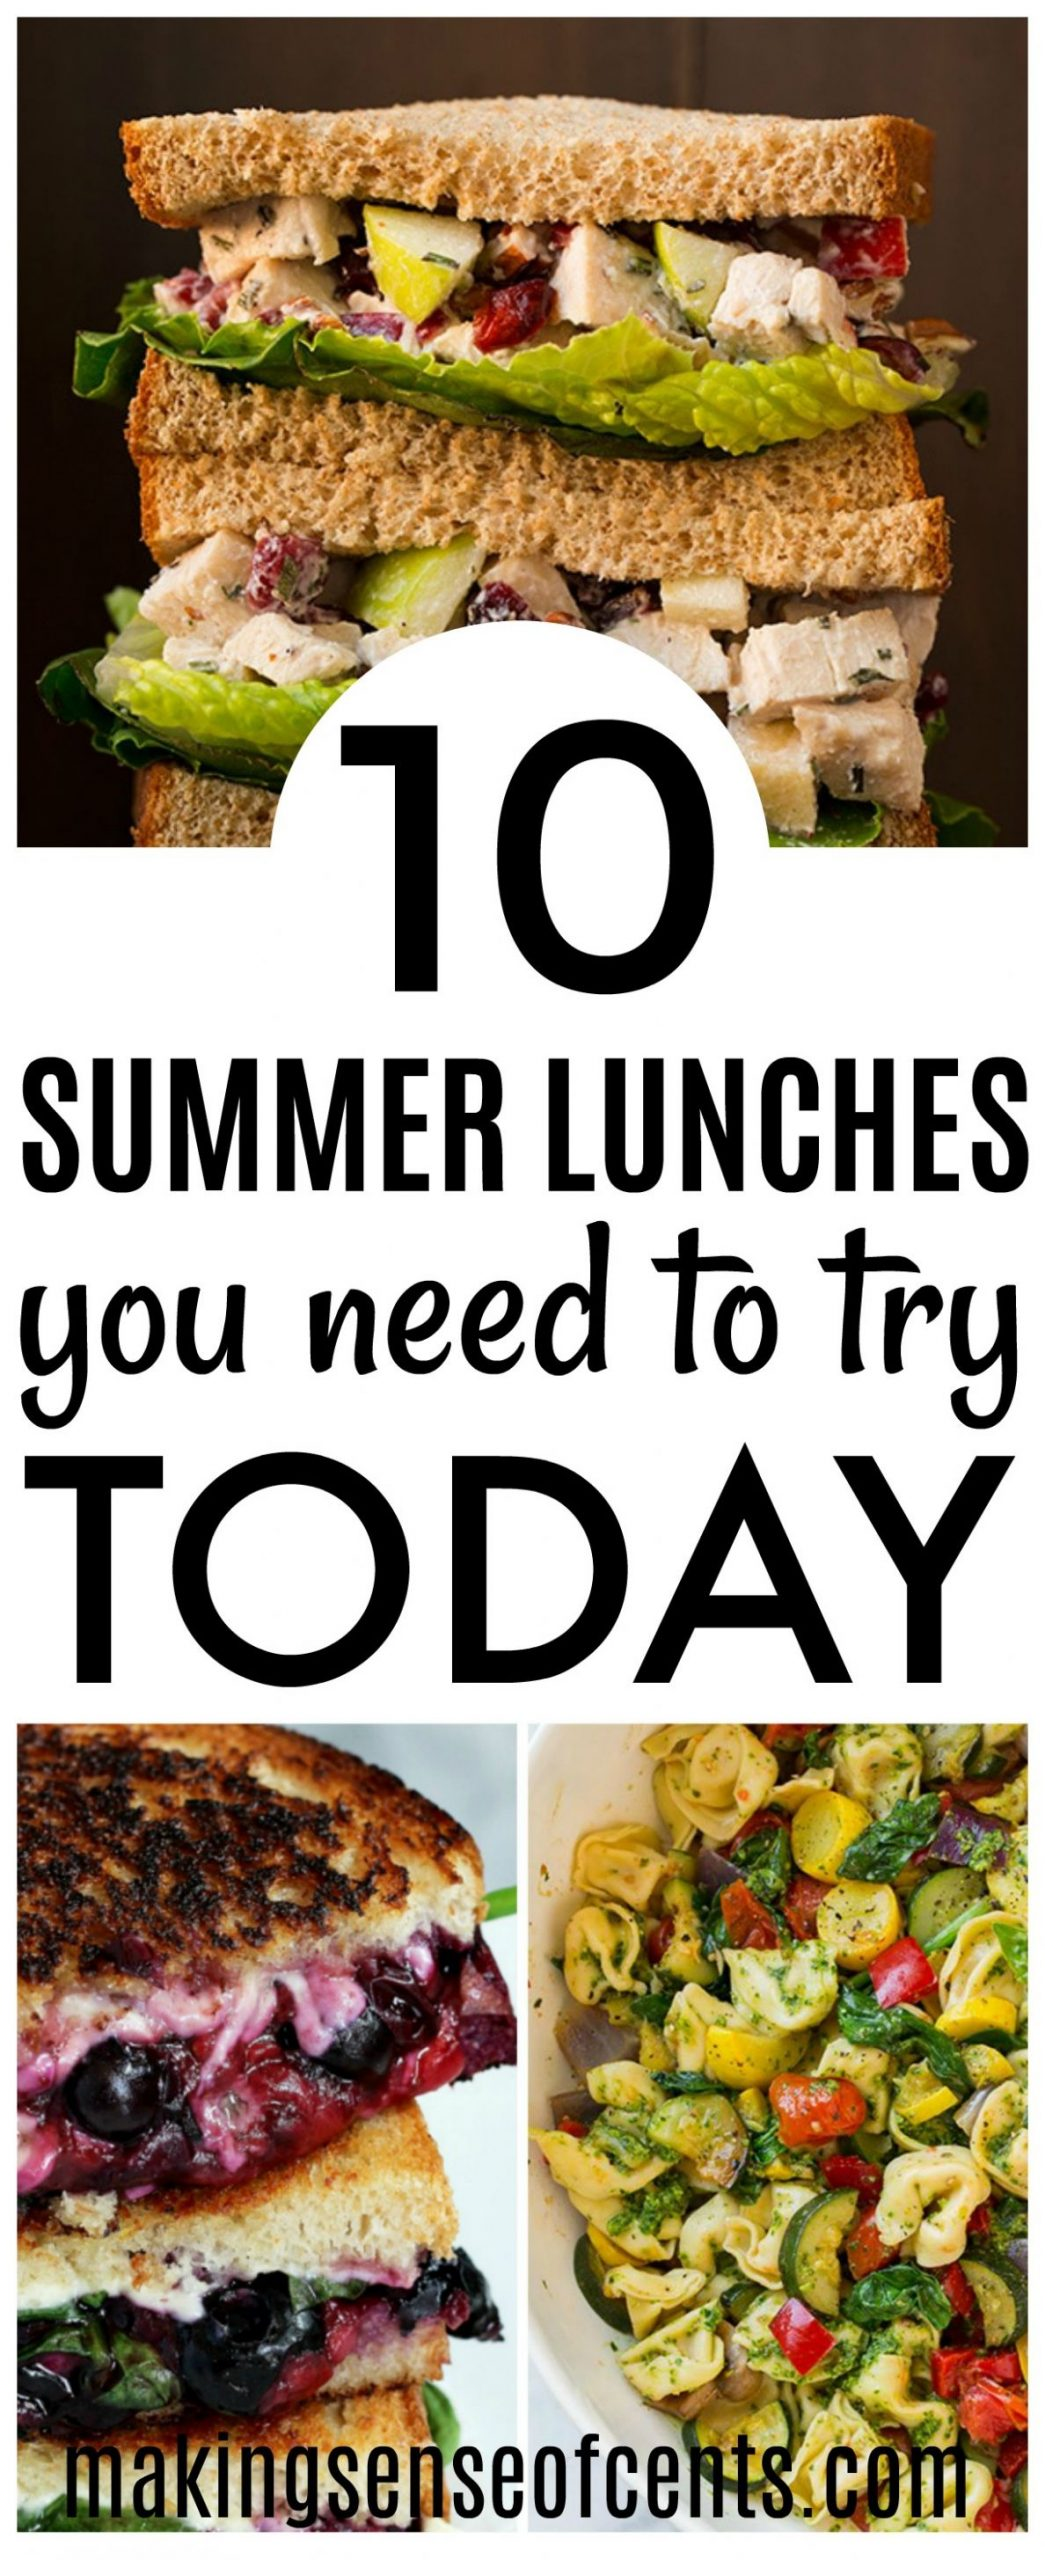 10 Delicious Summer Lunch Ideas - Summer Meals You Need To Make! - Summer Recipes On A Budget